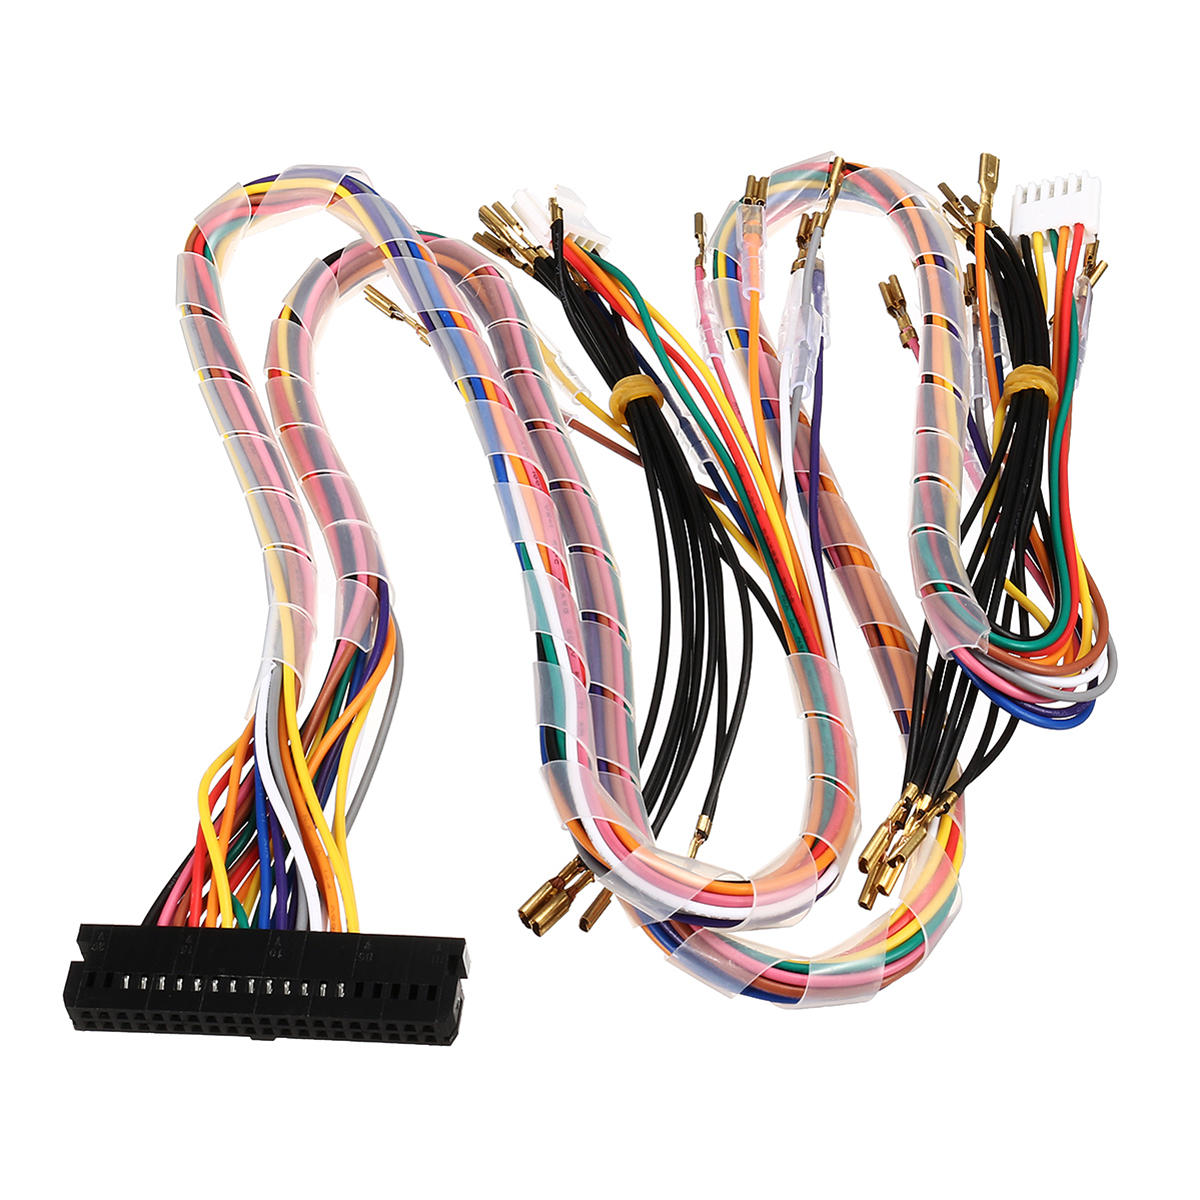 Awesome Wiring Harness Cable Replacement Parts Assemble For Arcade Jamma Wiring Digital Resources Bemuashebarightsorg